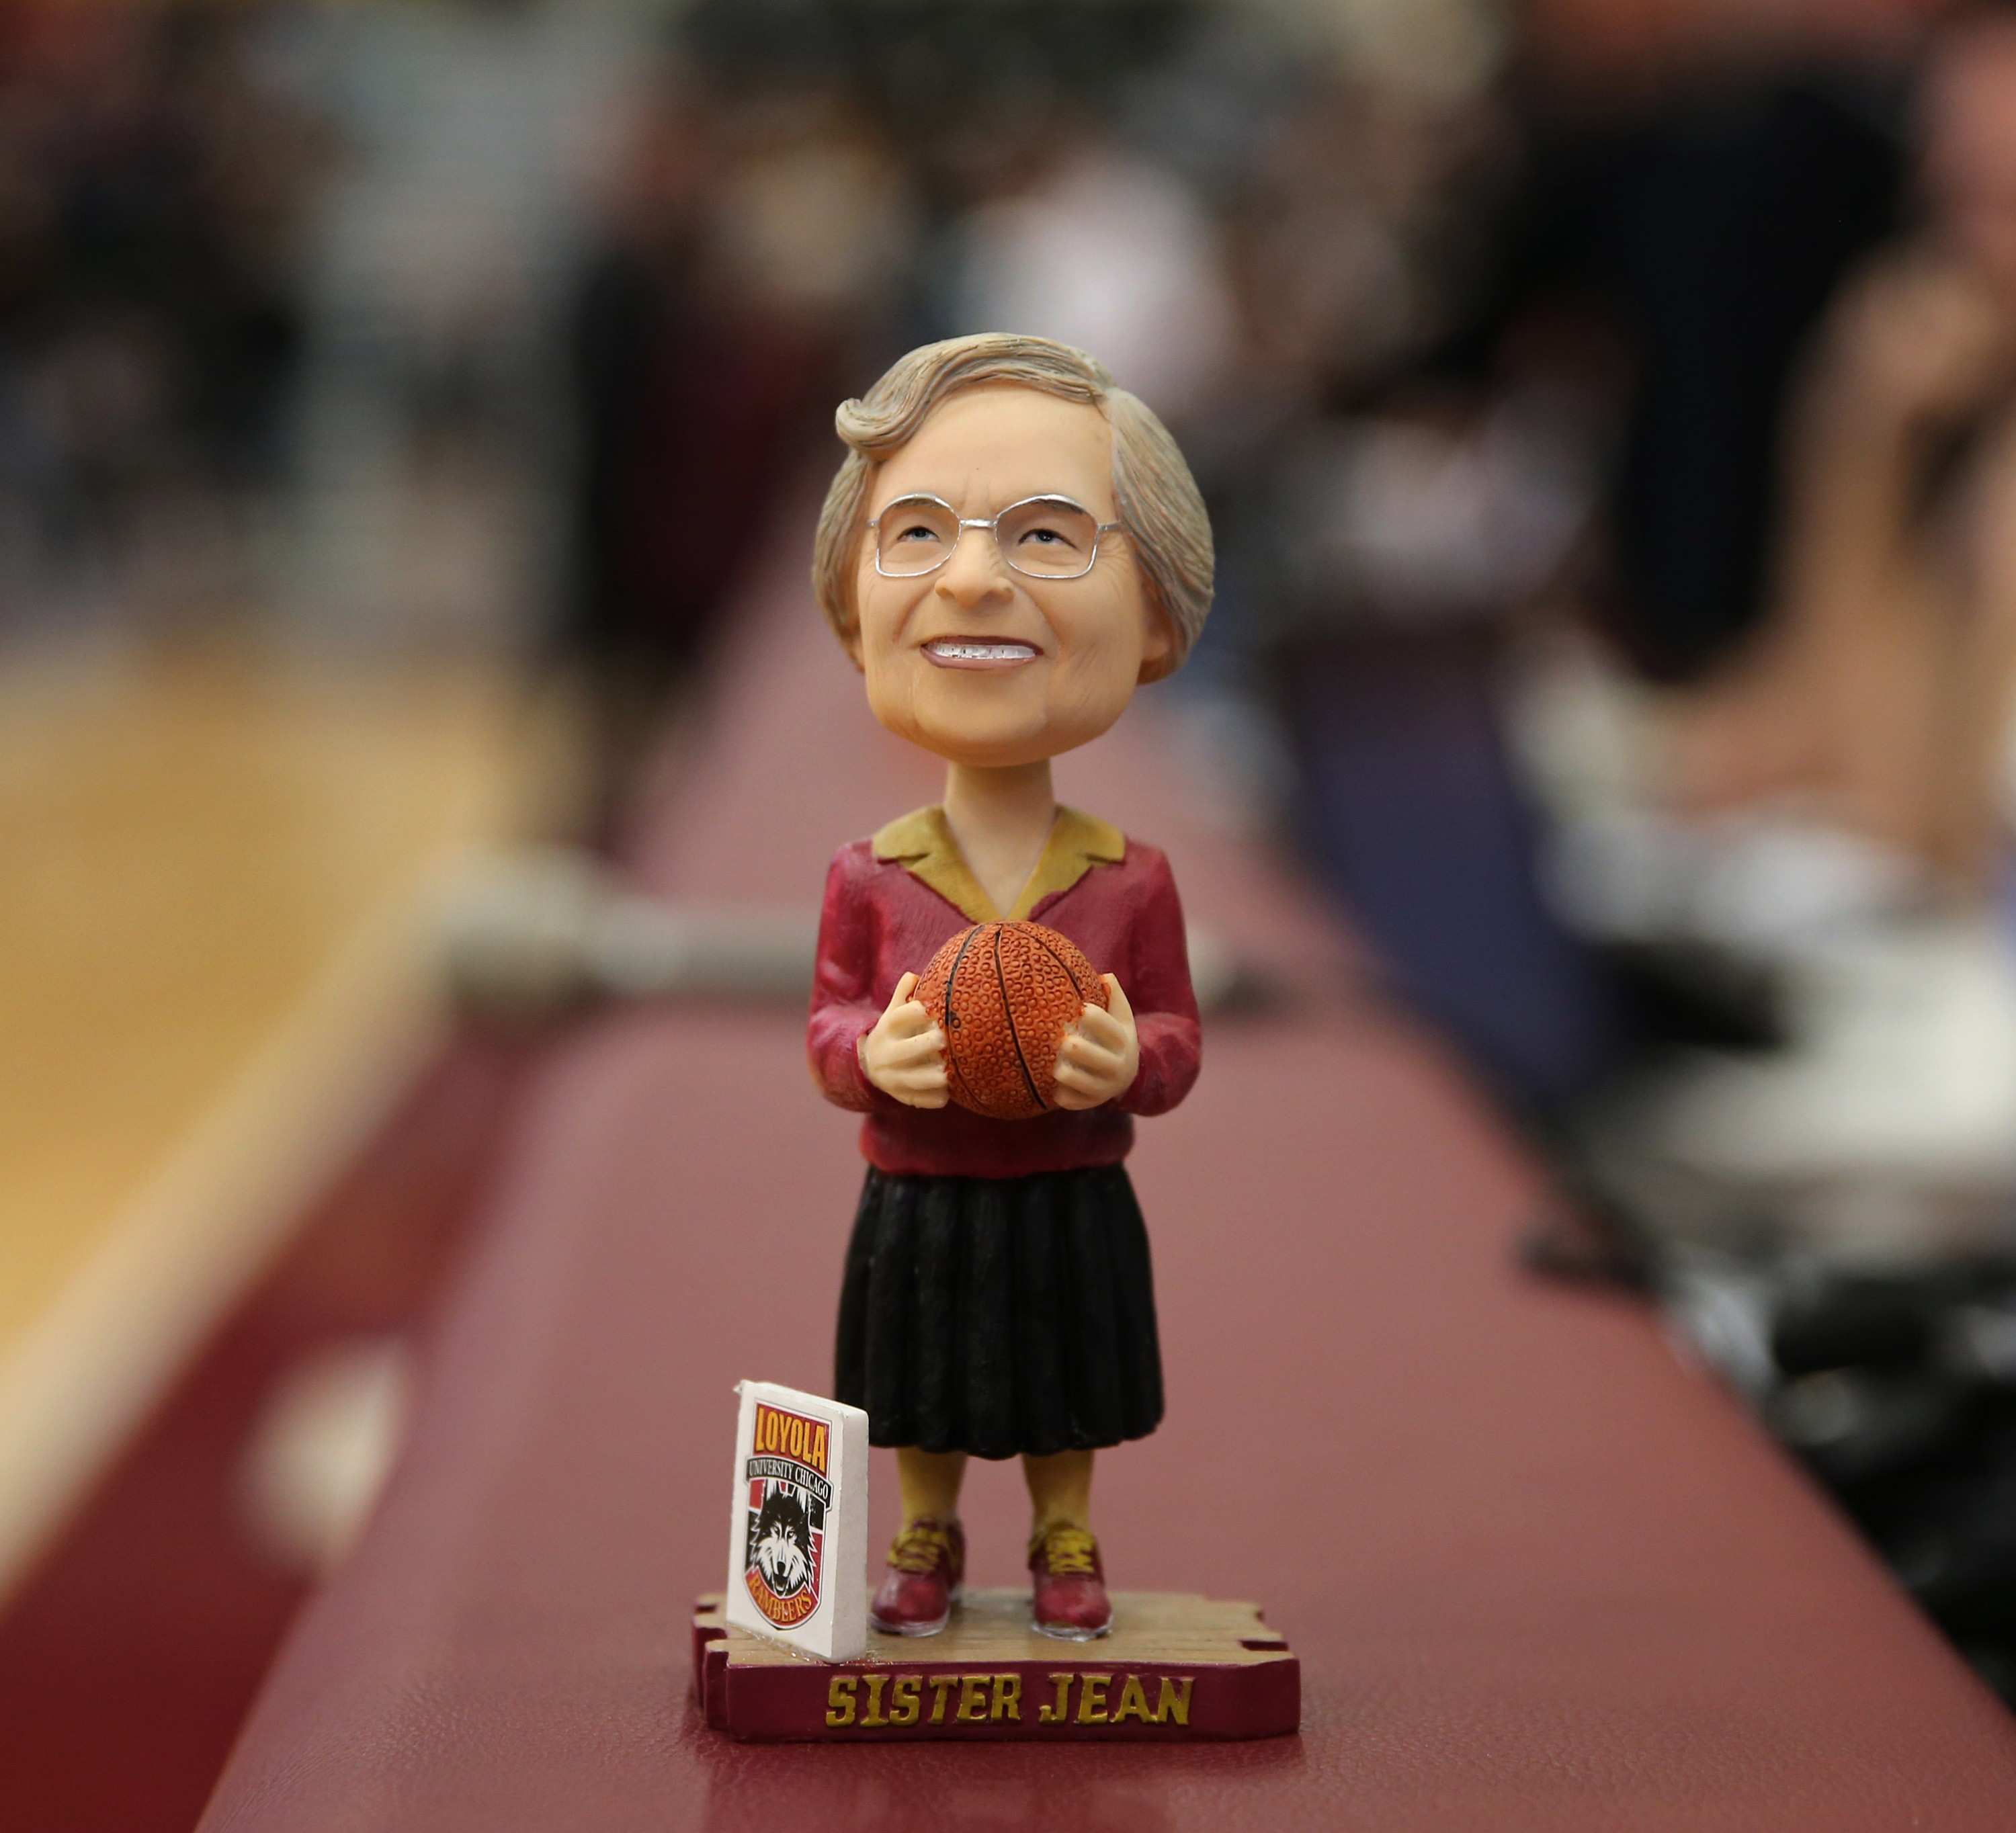 March Madness Brought Out the Michael Jordan in Sister Jean in 2018